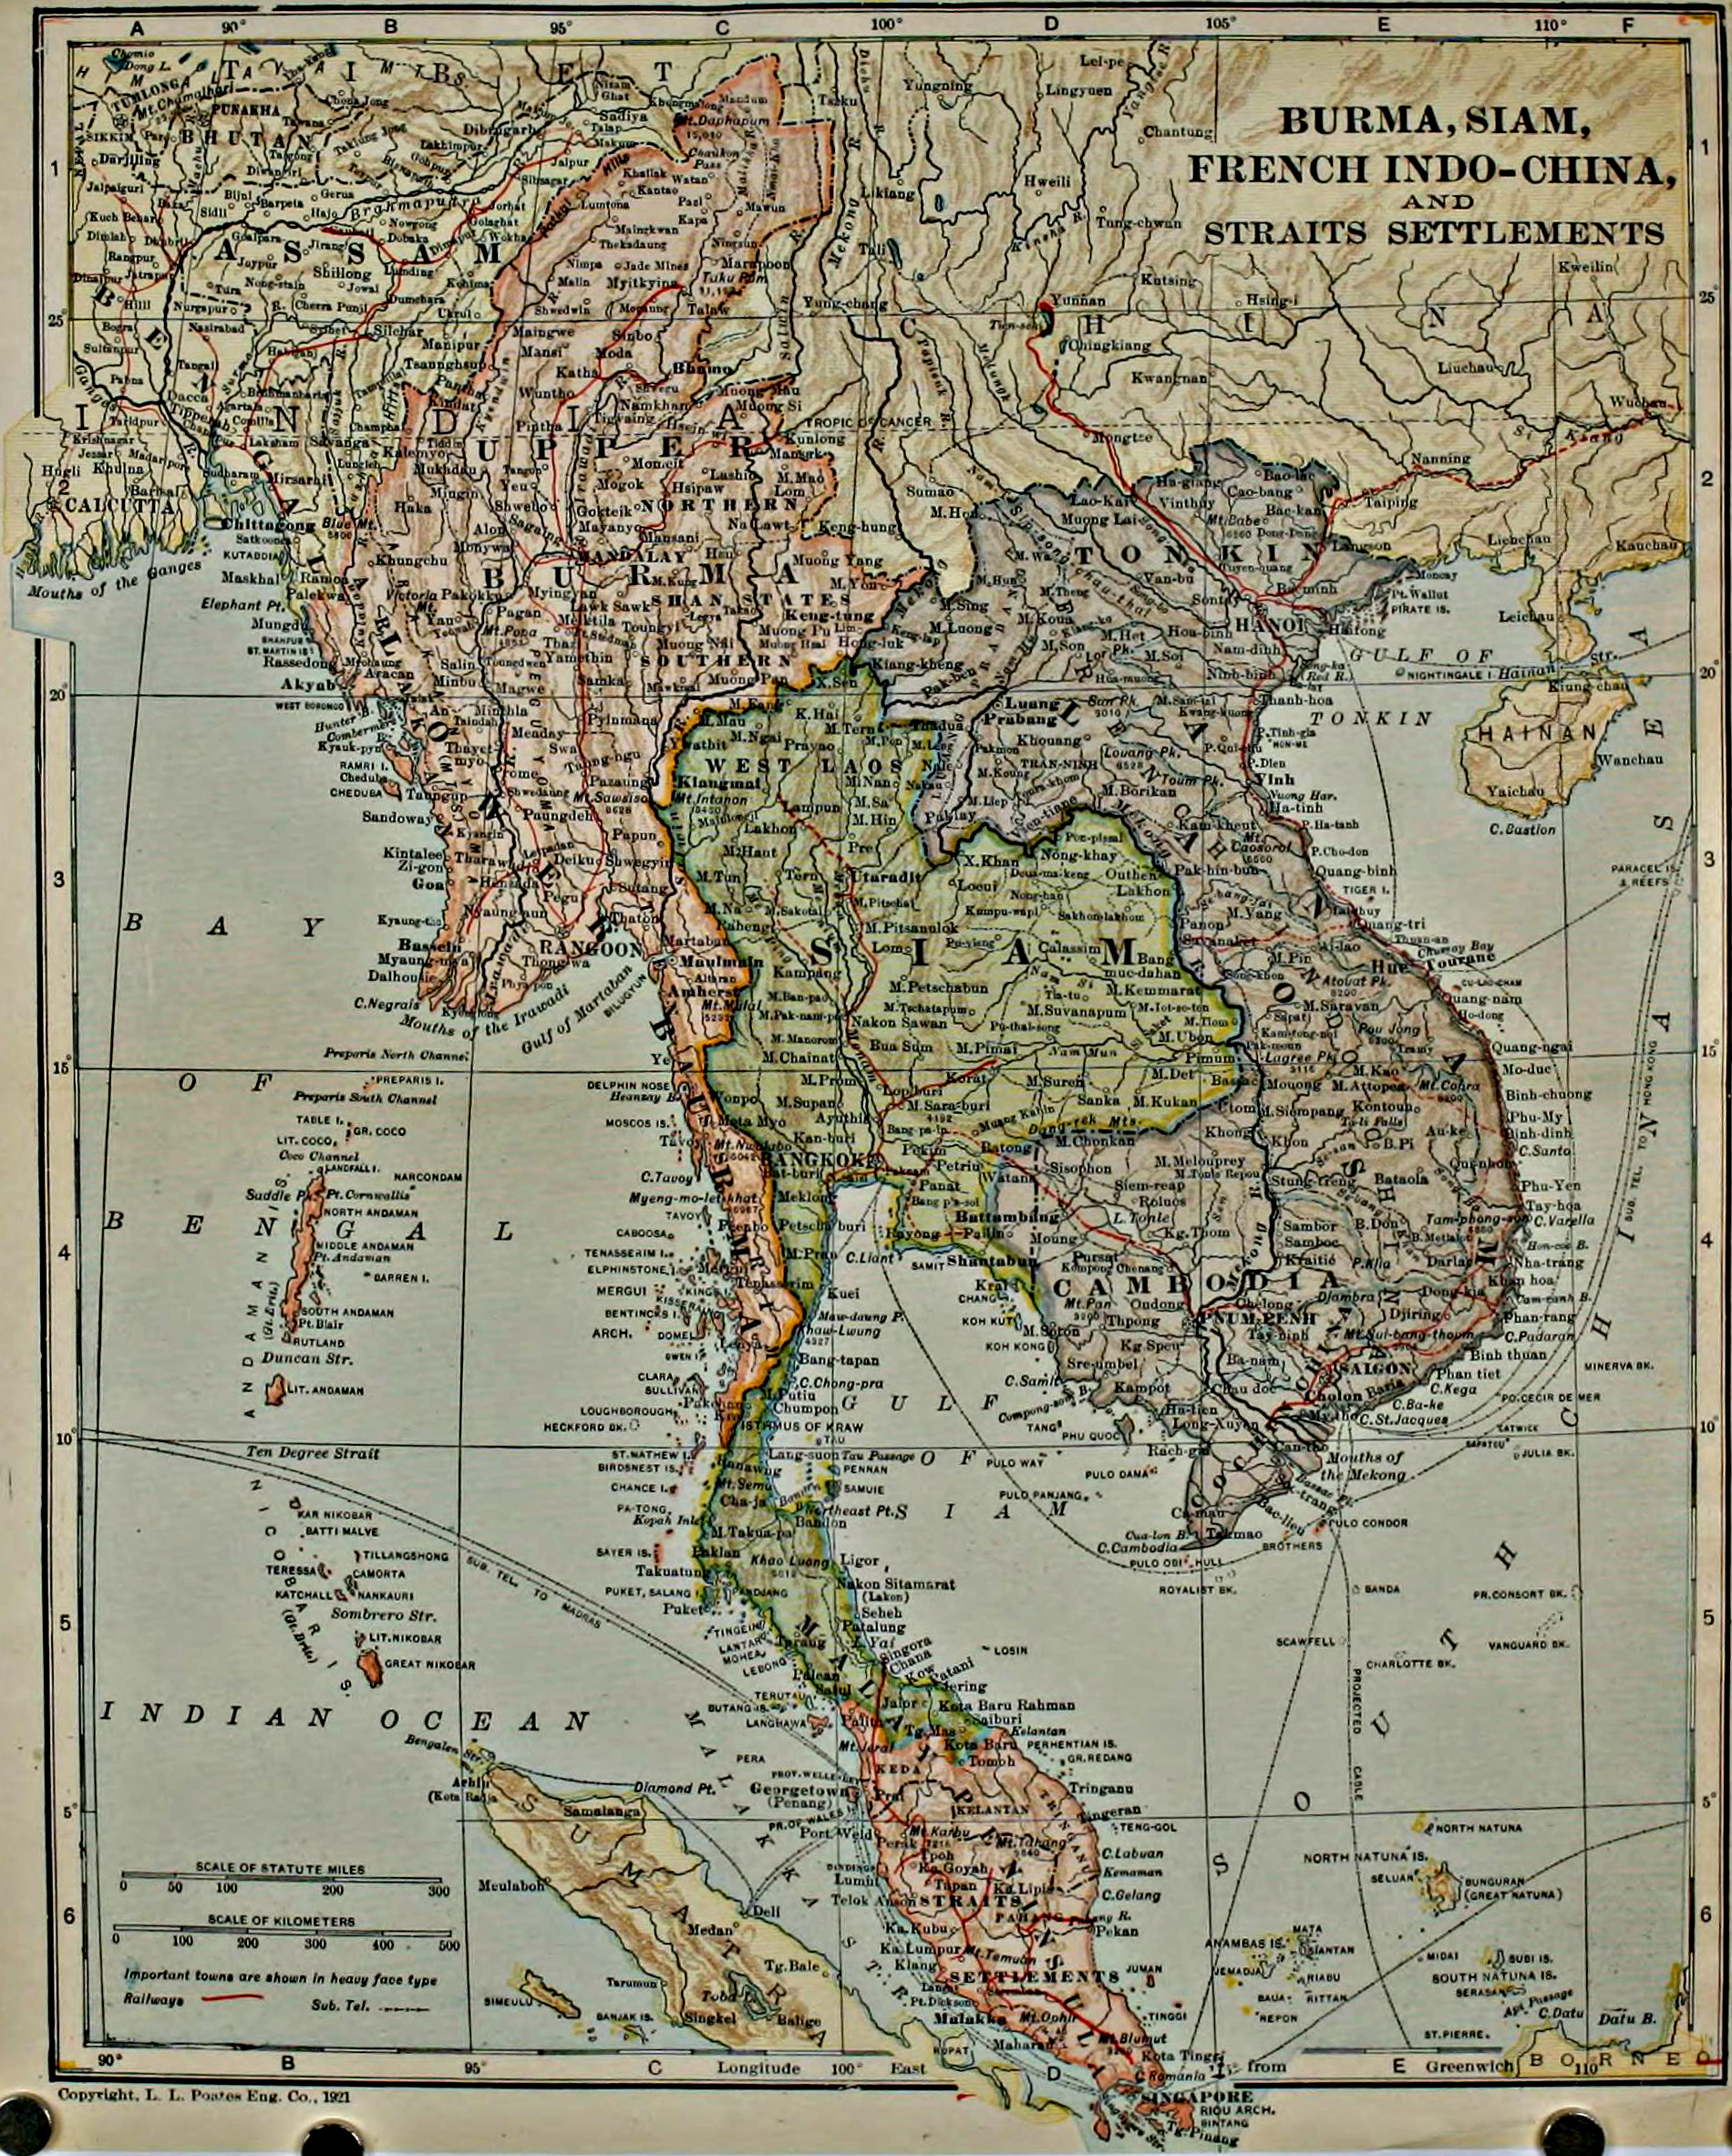 File Collier s 1921 Burma   map of Burma  Siam  French Indo China     File Collier s 1921 Burma   map of Burma  Siam  French Indo China